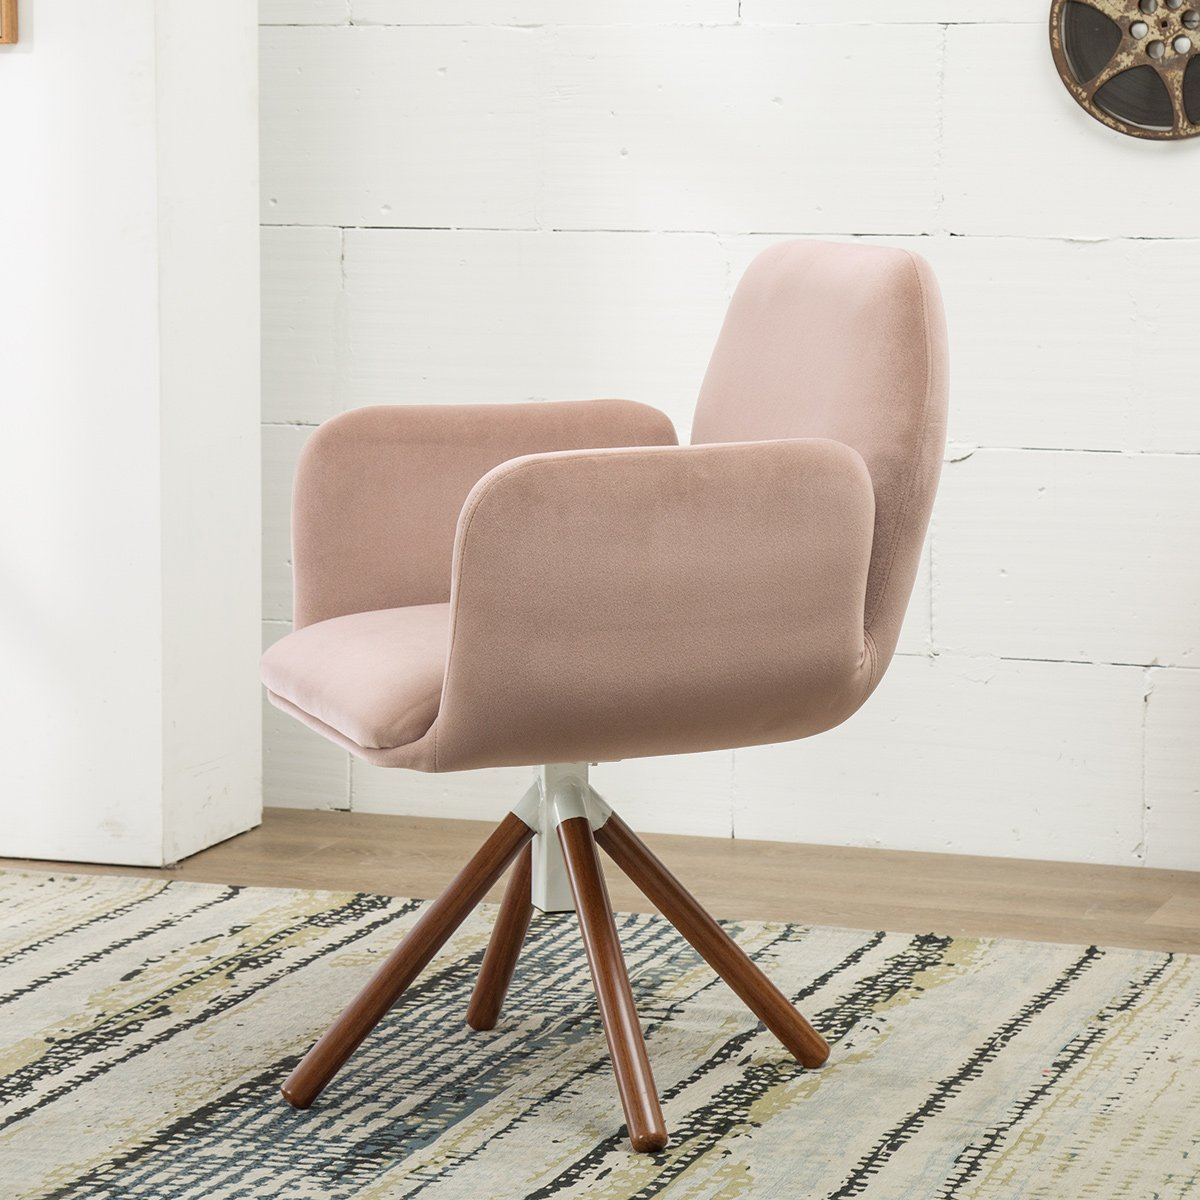 Living Room Chair Leisure Arm Chair Sofa Modern Living Room Accent Armchair by KERMS